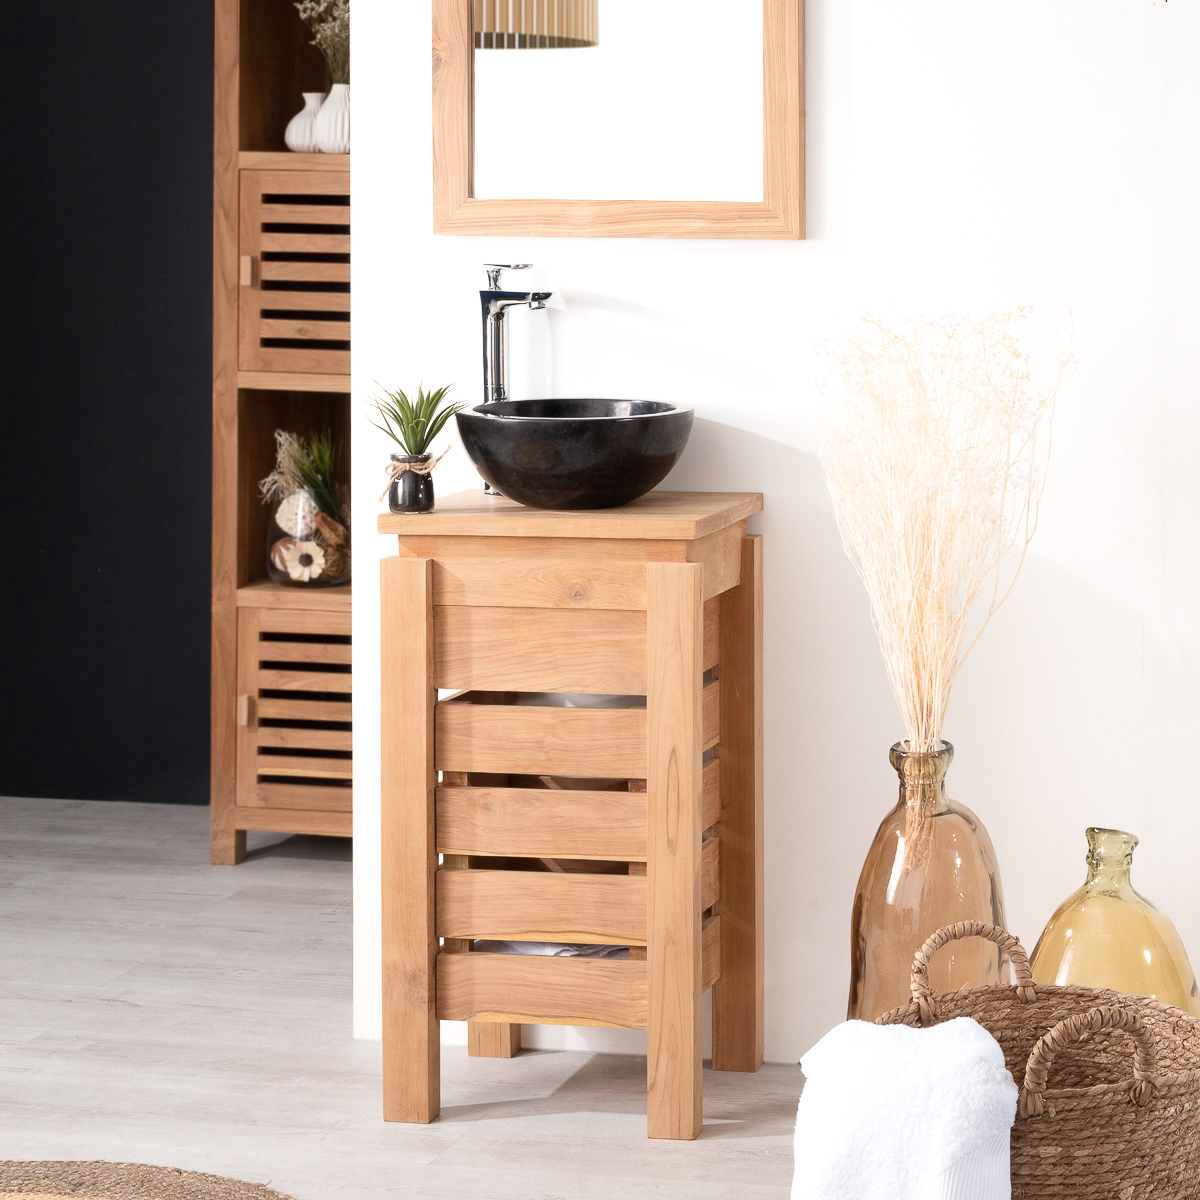 Meuble sous vasque simple vasque en bois teck massif zen rectangle naturel l 40 cm for Petit meuble salle de bain